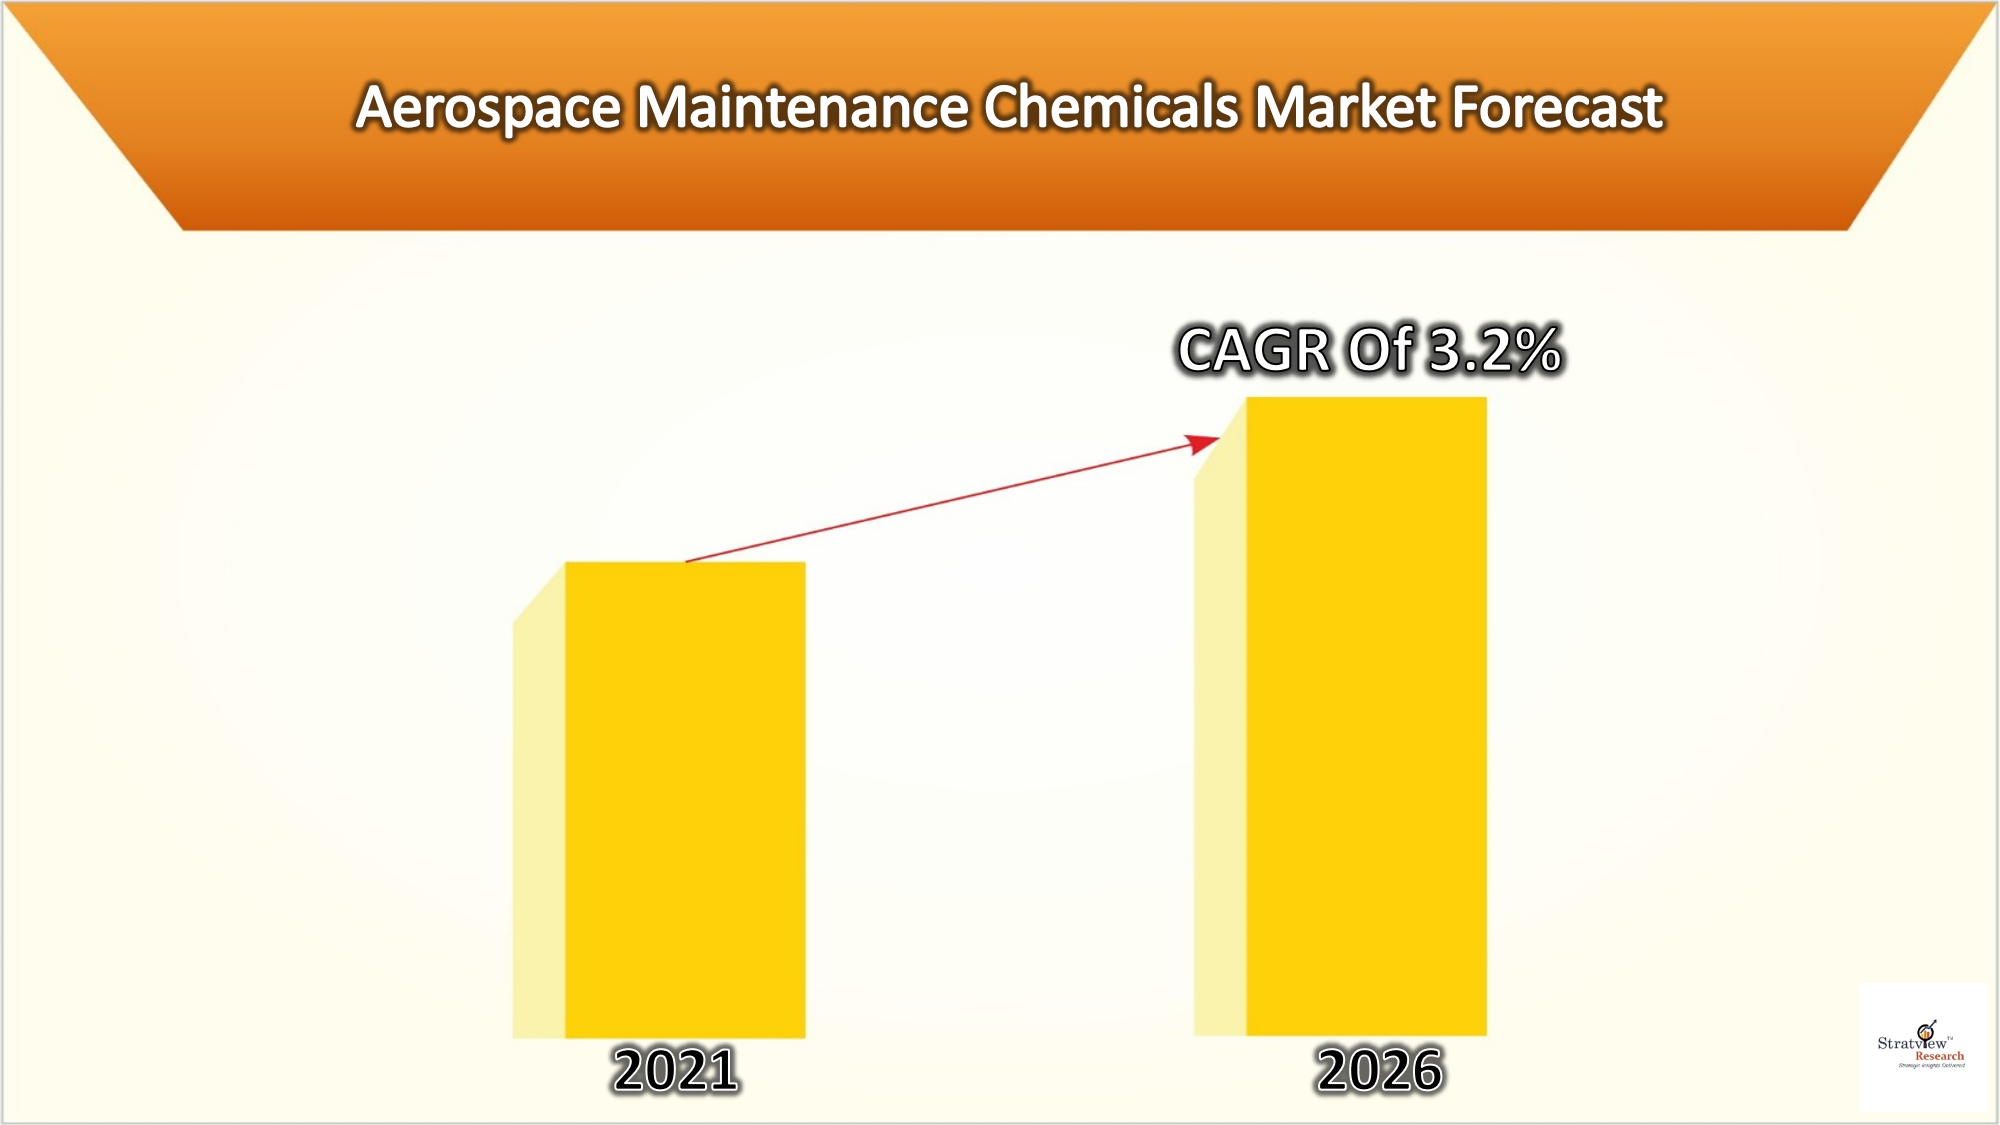 Aerospace Maintenance Chemicals Market